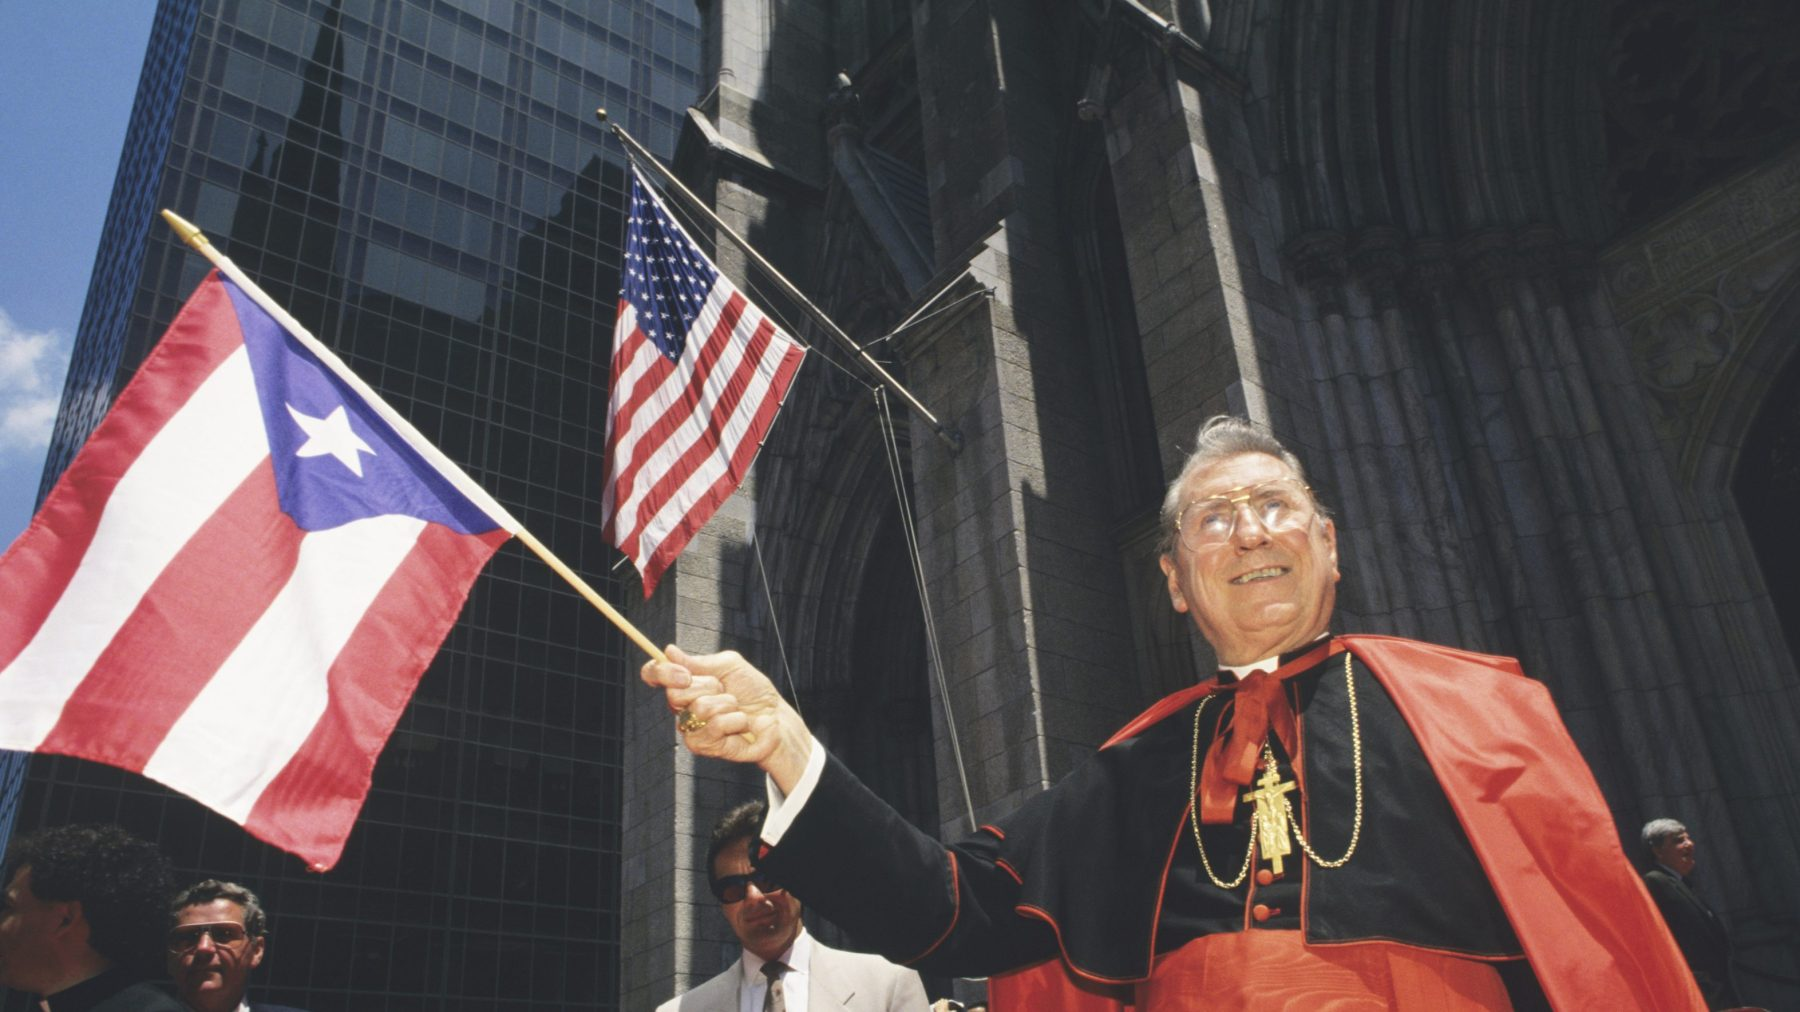 Cardinal John O'Connor in front of Saint Patrick's Cathedral during the Puerto Rican Day Parade. (Mark Peterson/Corbis via Getty Images)